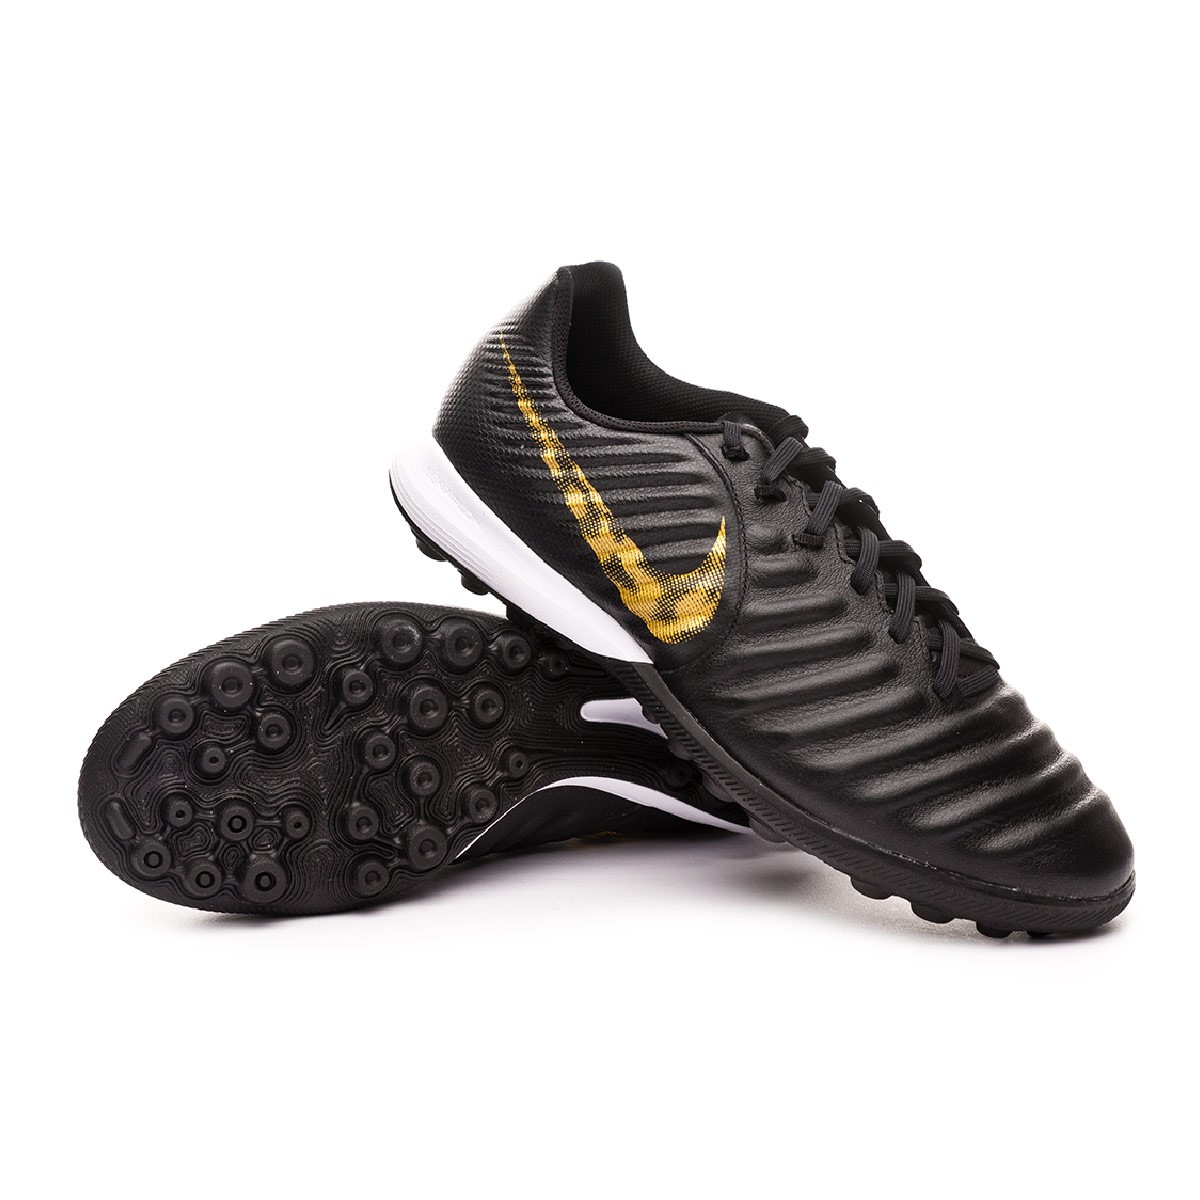 low priced 91a7d 17159 Zapatilla Tiempo LegendX VII Pro Turf Black-Metallic vivid gold